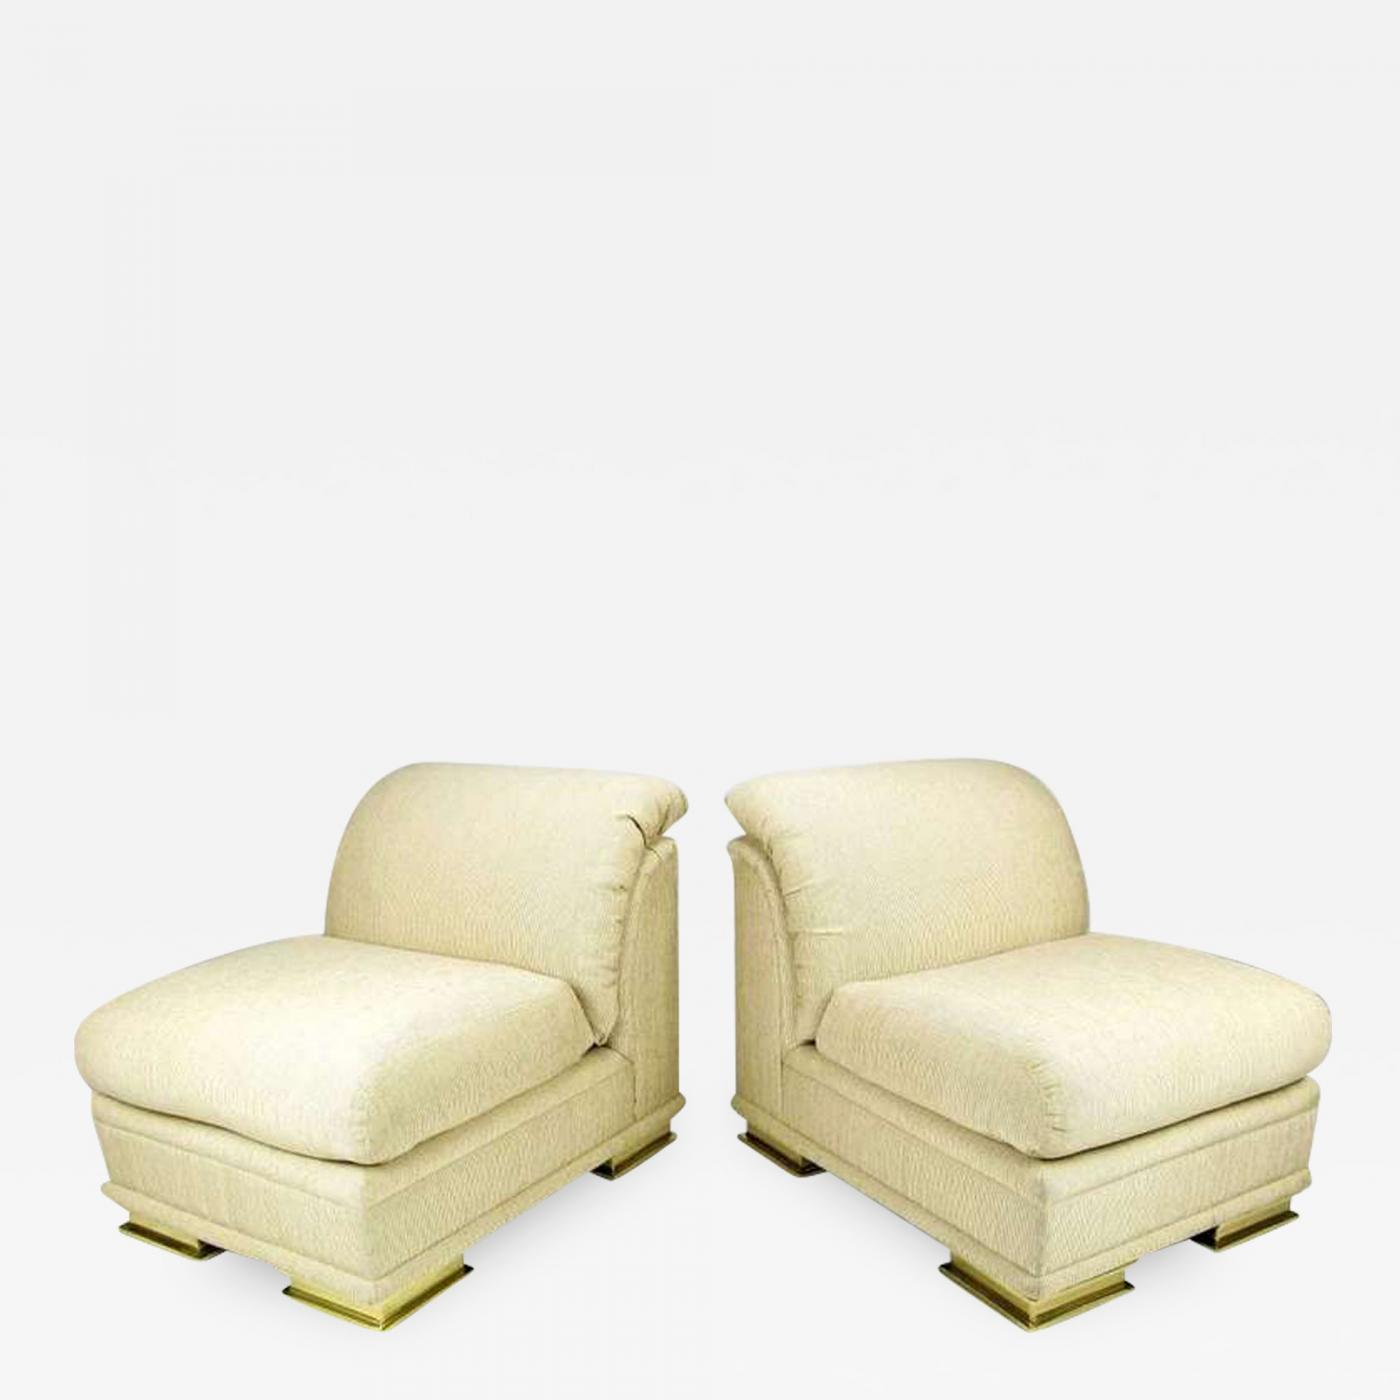 Henredon Chair Henredon Furniture Pair Of Henredon Deco Revival Slipper Chairs In Taupe Silk And Brass